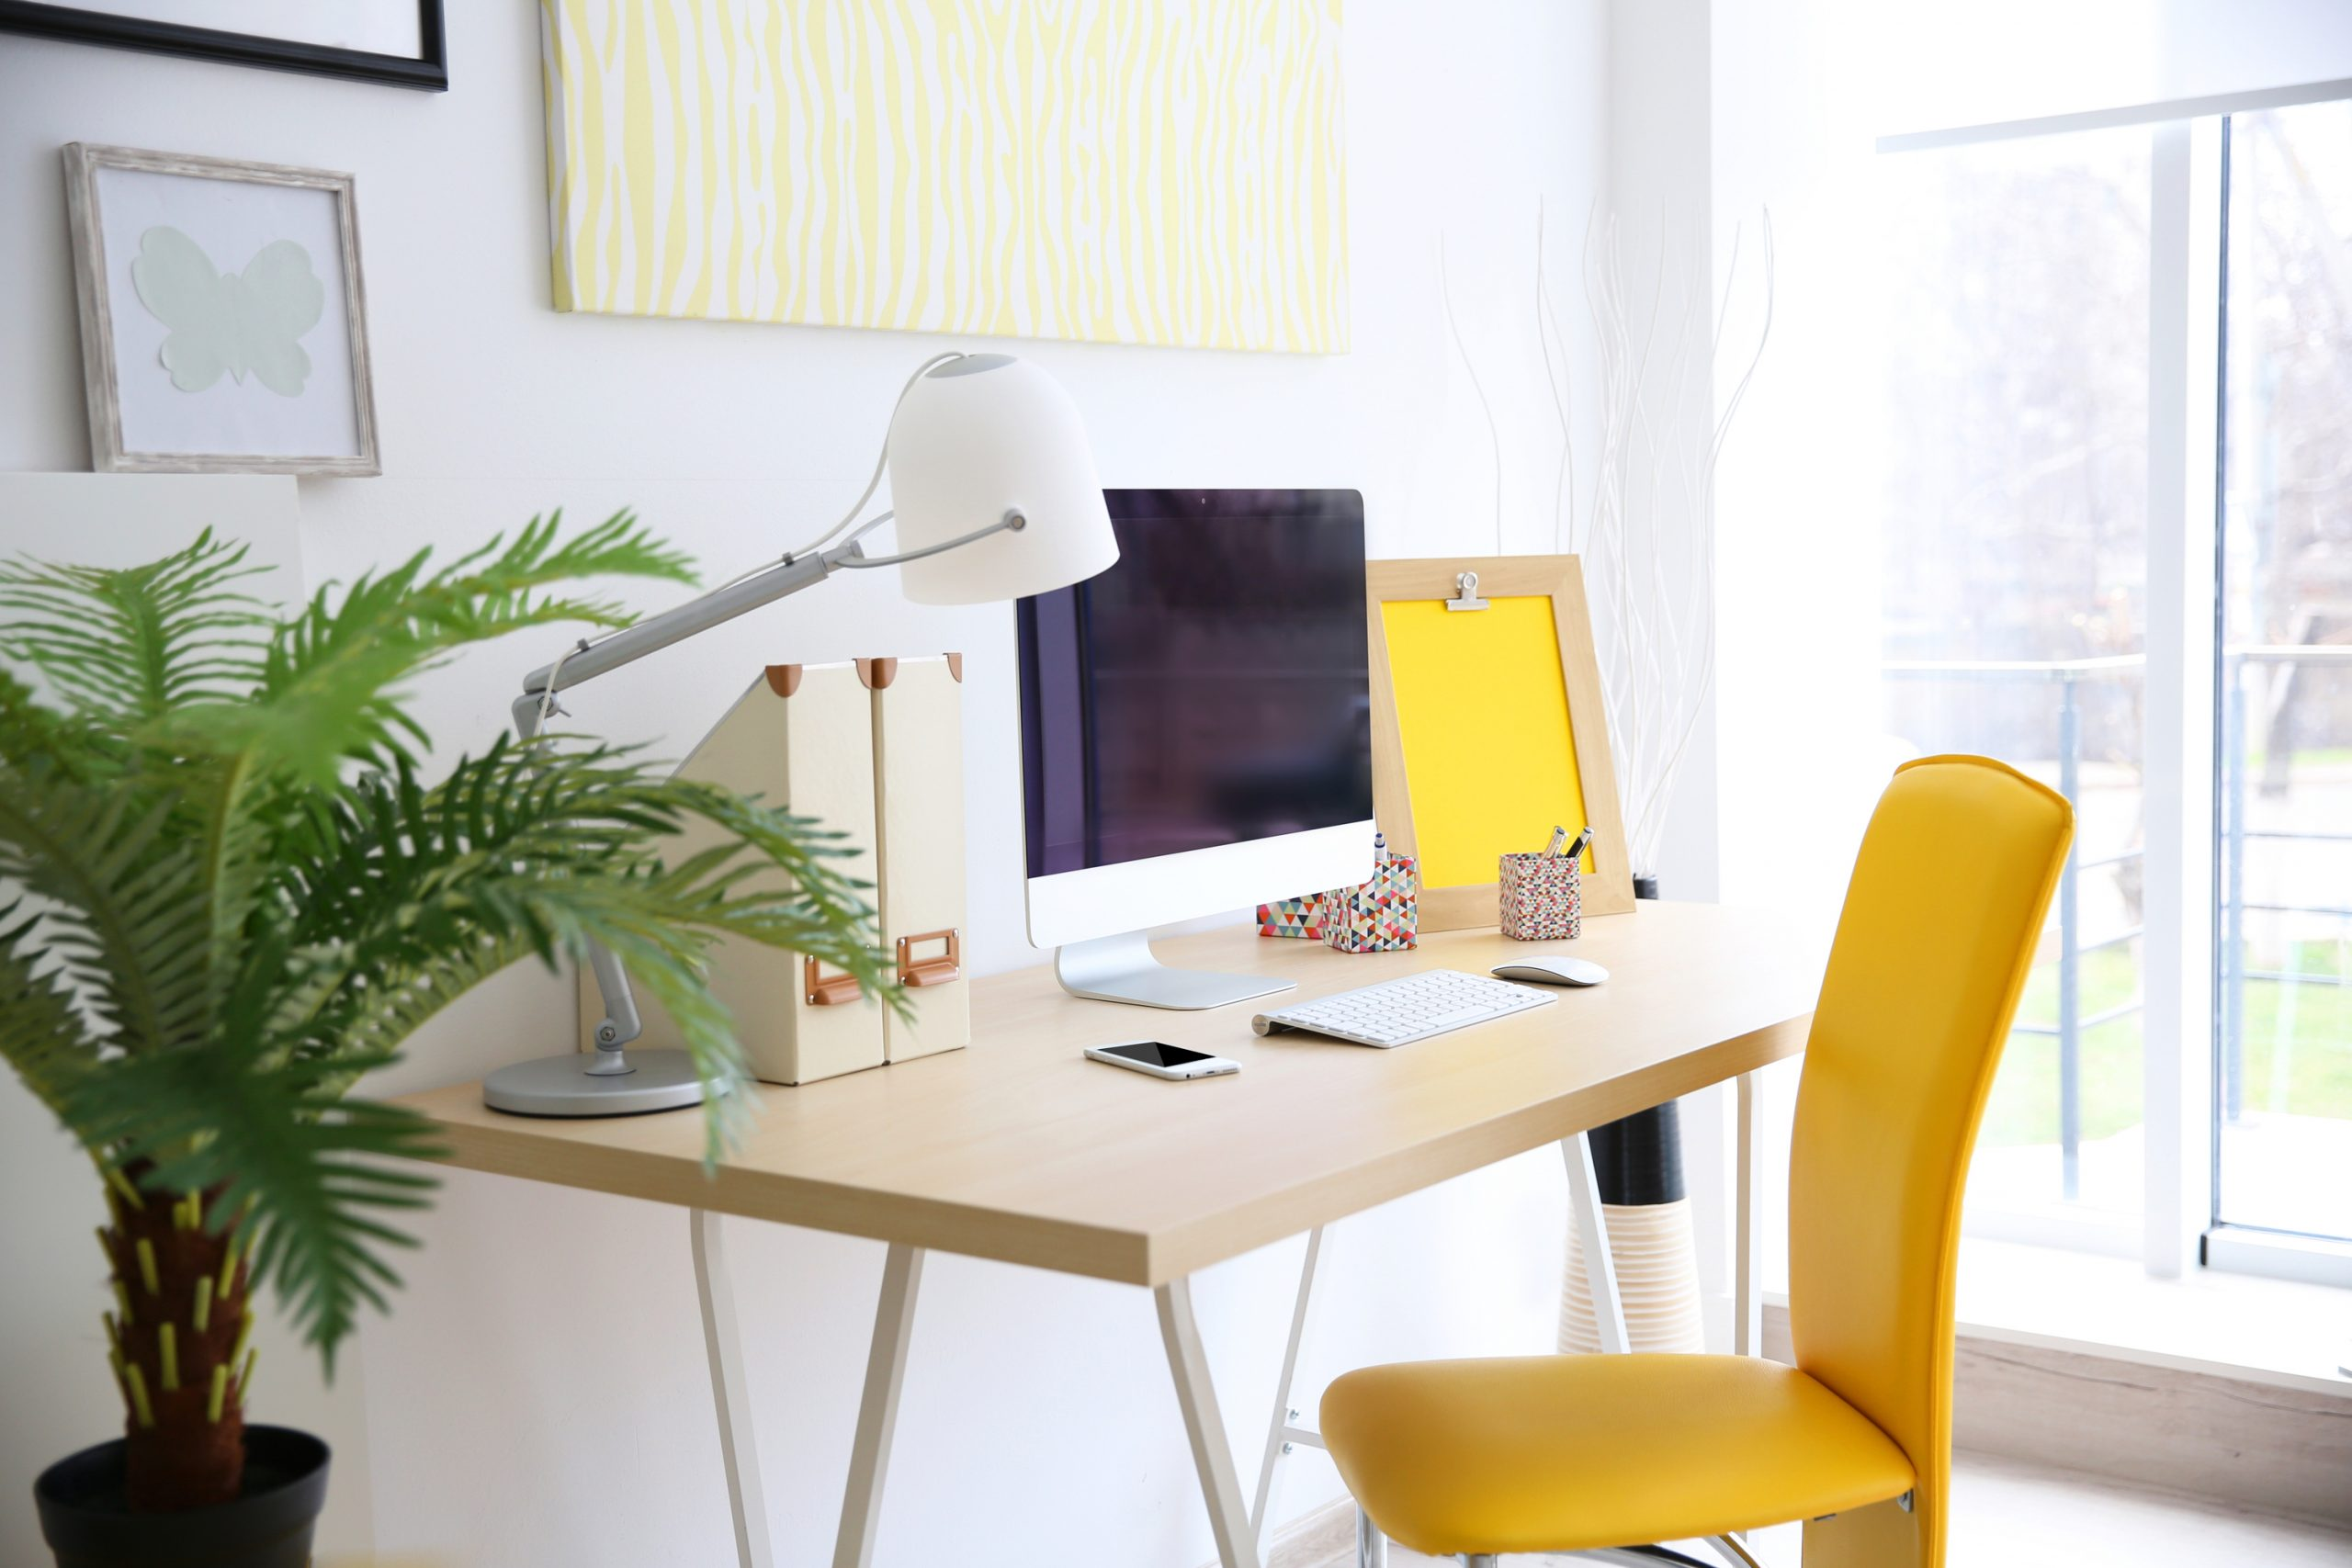 Are you looking to make your own DIY office decor? You're in luck! We have the best DIY office decor ideas that will suit your needs.